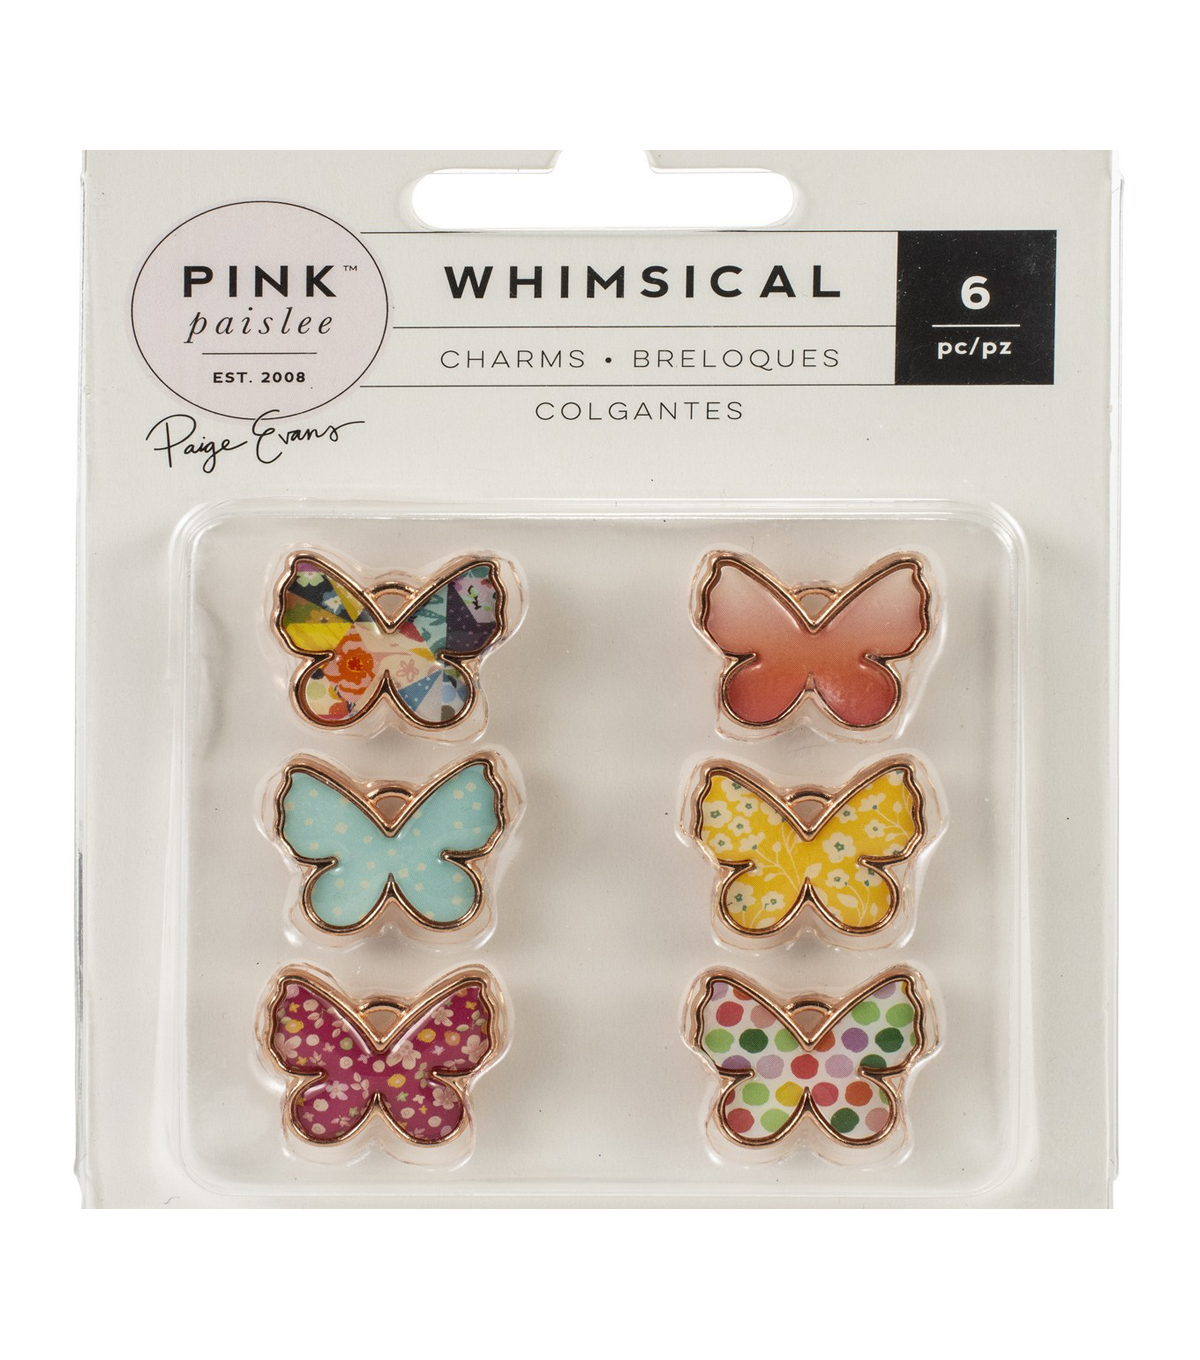 Pink Paislee Paige Evans Whimsical 6 pk Butterfly Charms